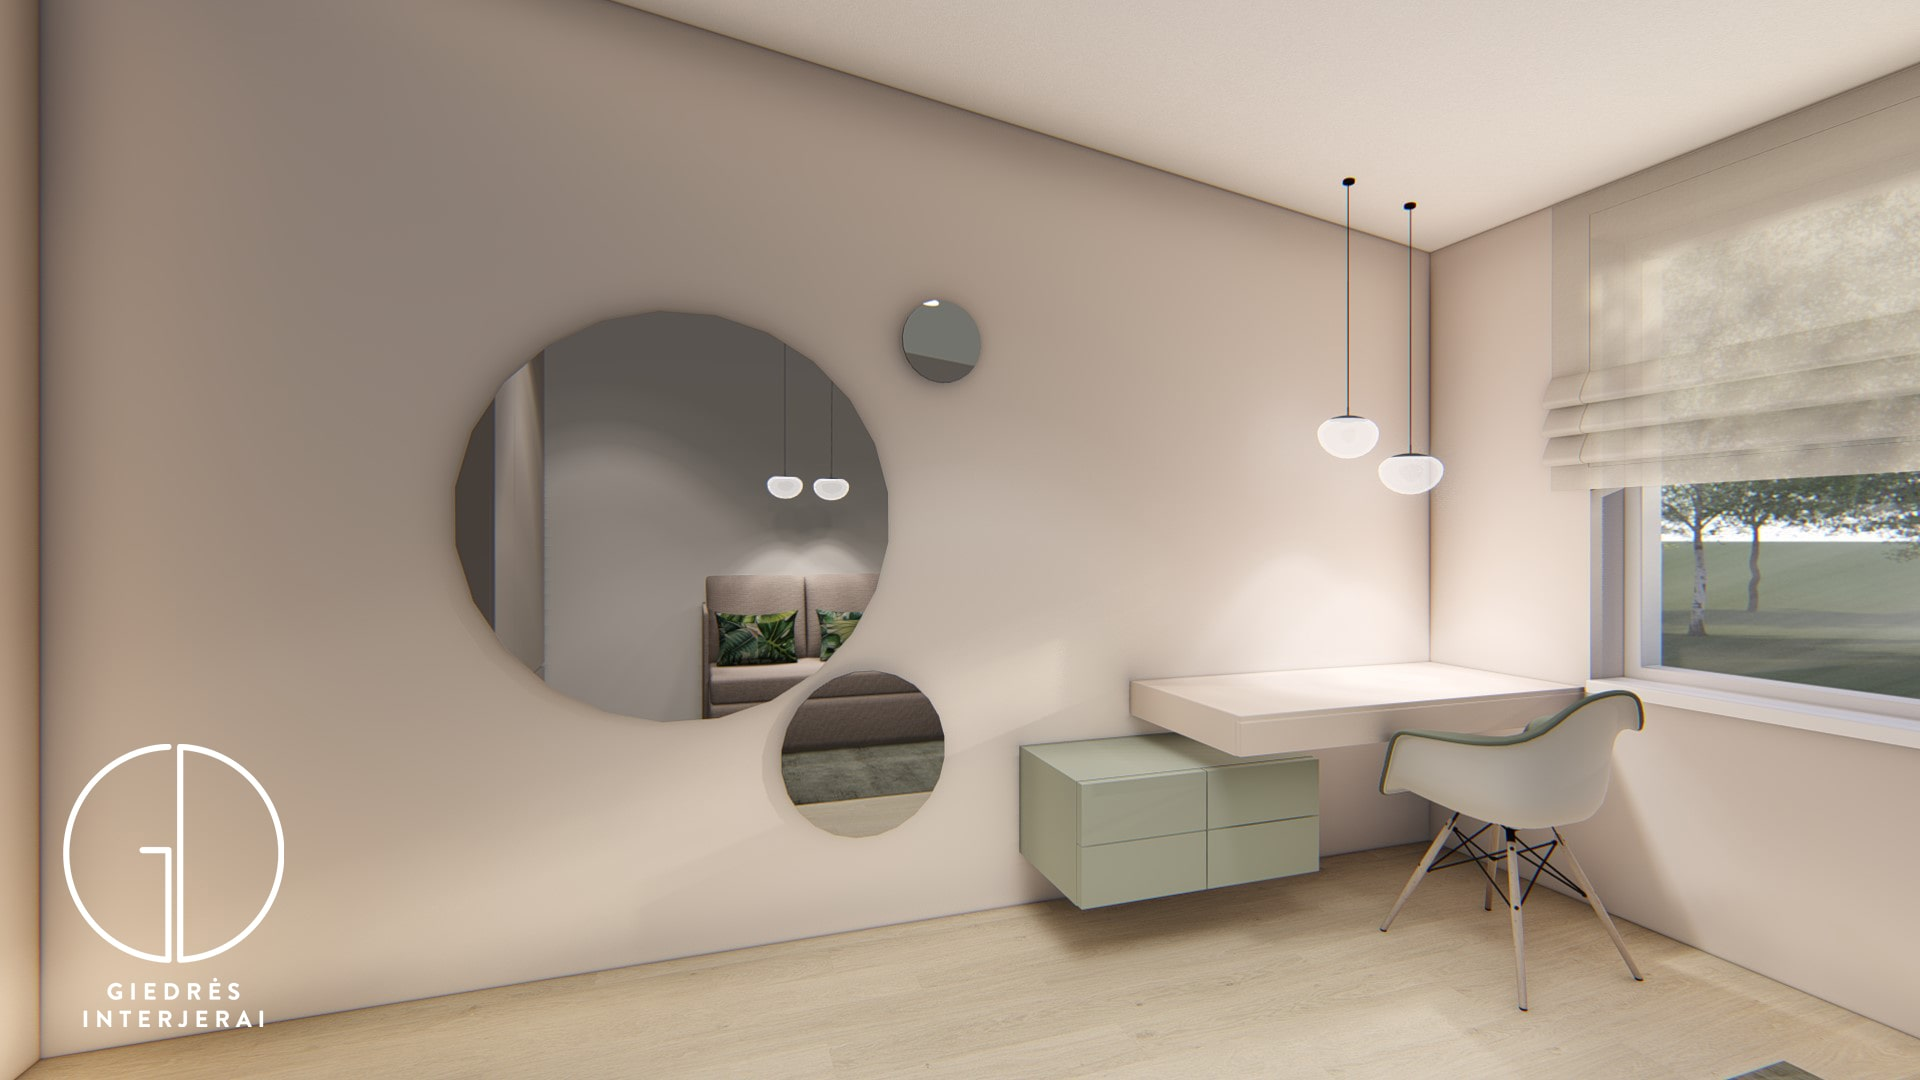 Girls room interior